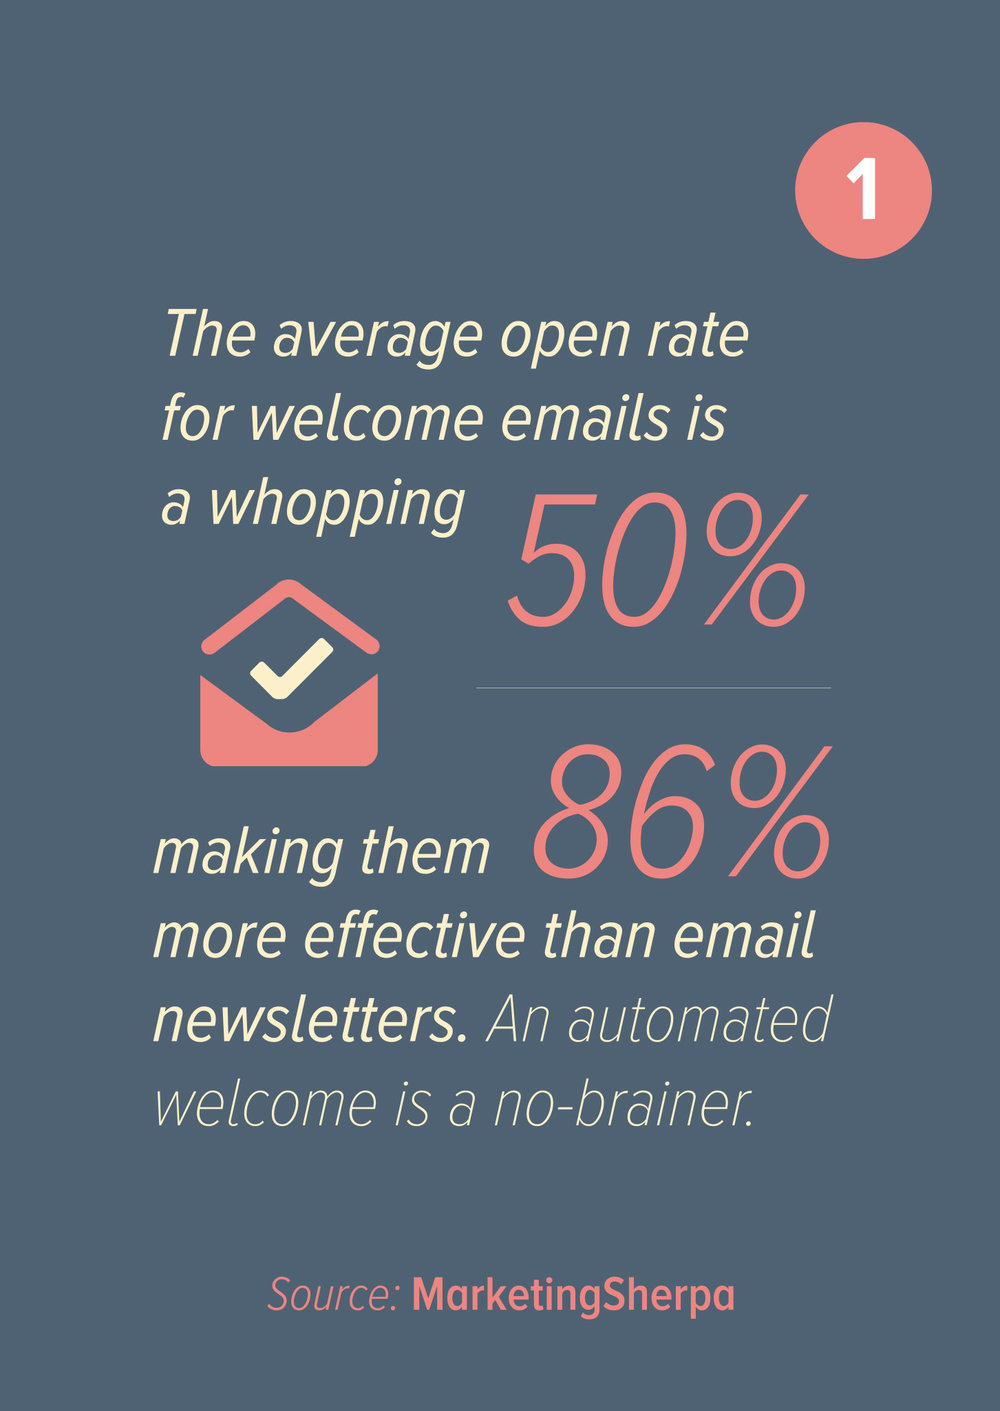 Source:   https://www.slideshare.net/kingdevil/email-marketing-statistics-quotes-and-tips-shared-by-brands-via-pallabslides